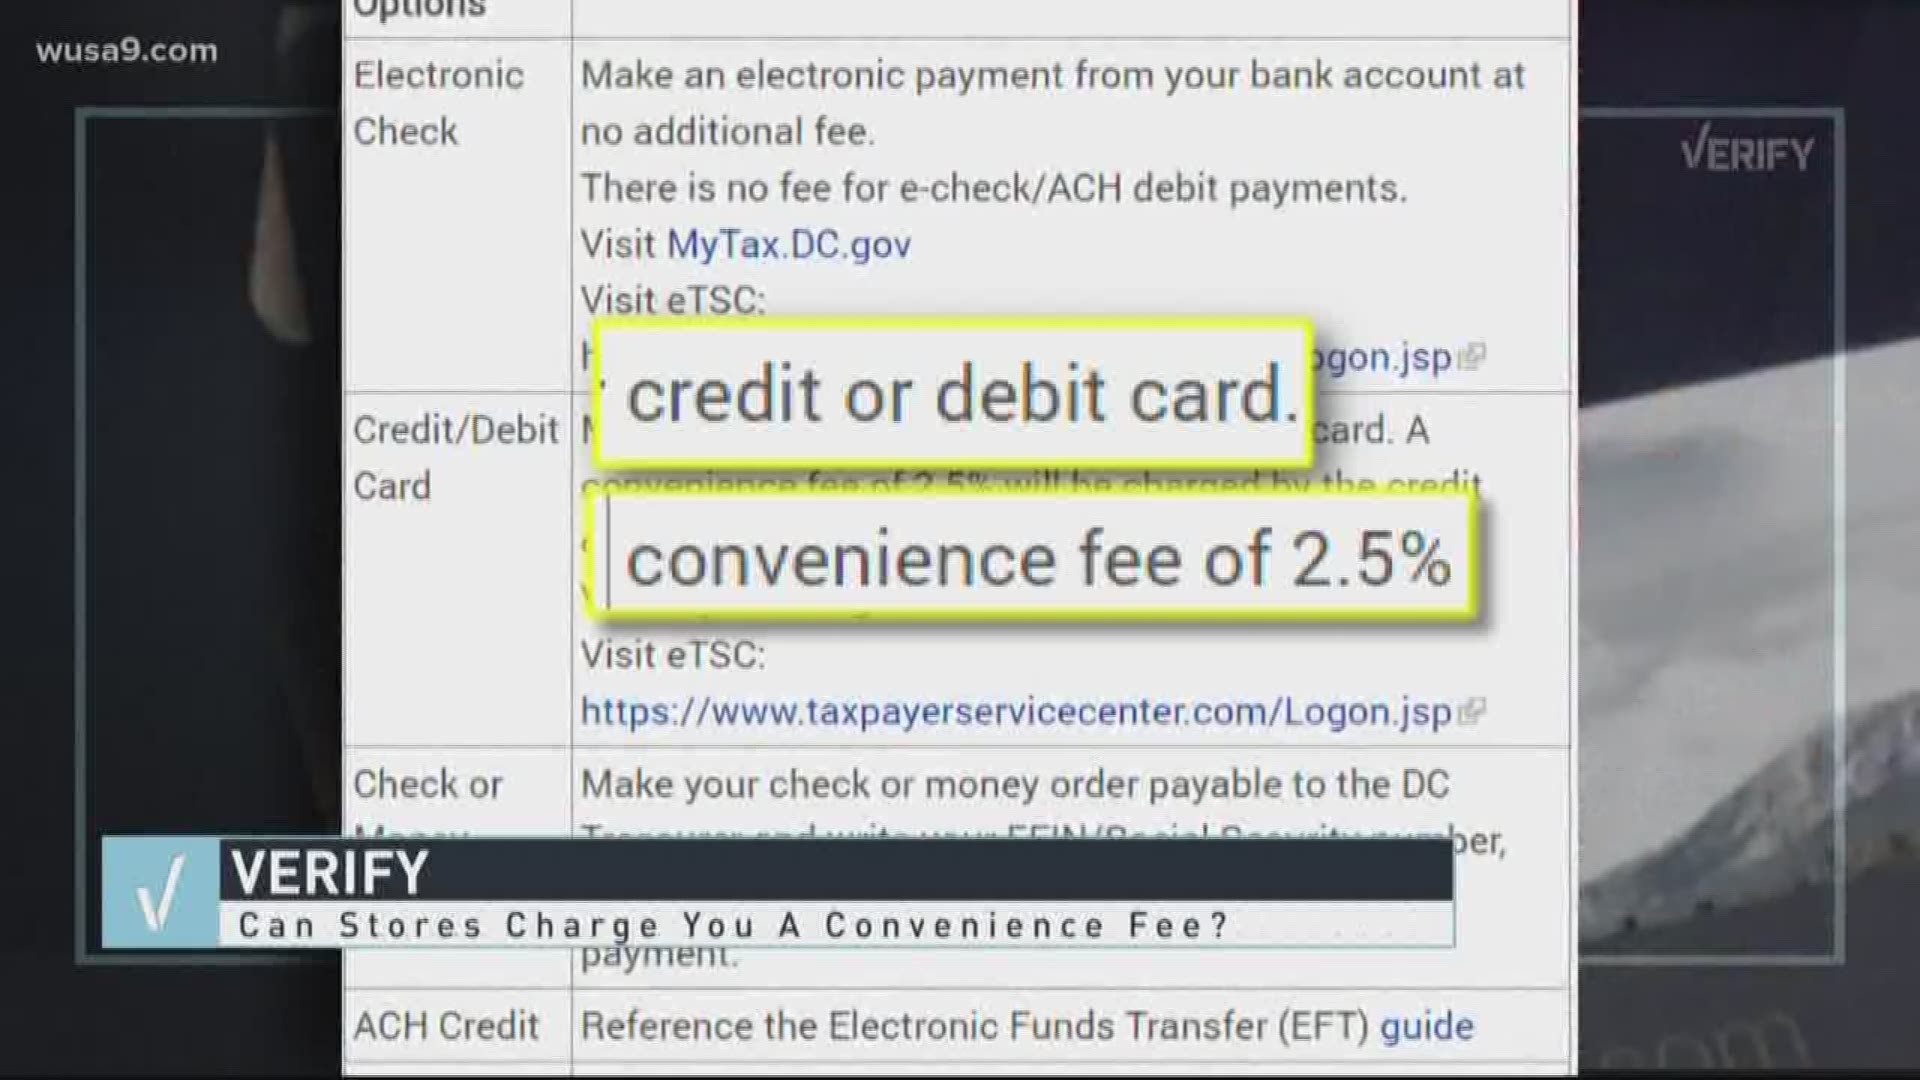 Verify Can You Be Charged A Convenience Fee For Using A Credit Card Wusa9 Com